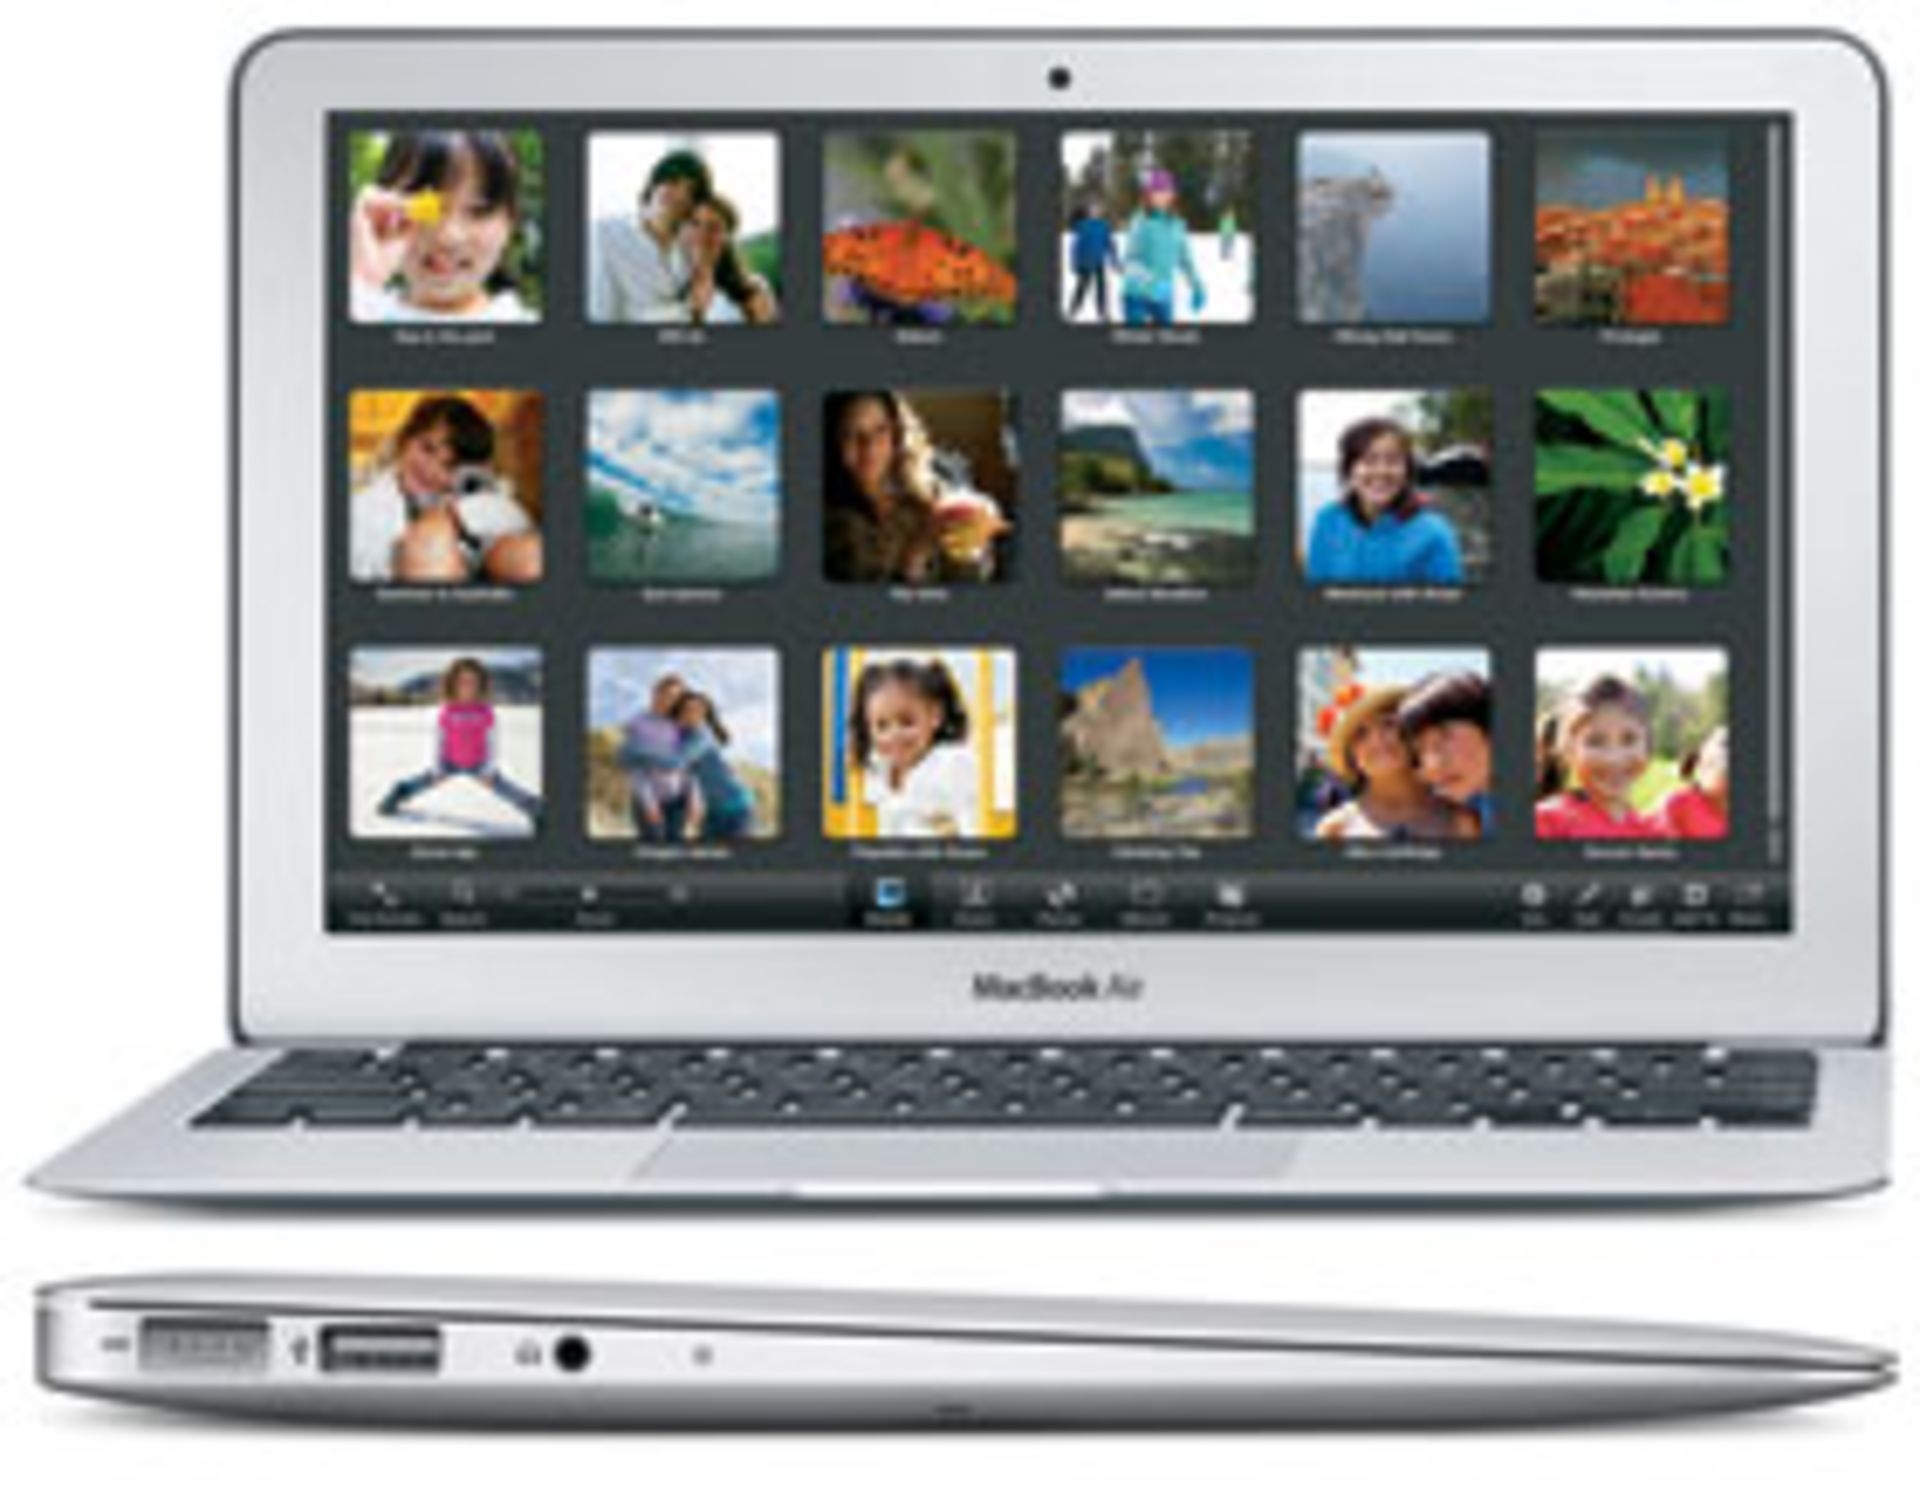 Lot 60035 - V Grade B Macbook Air 11.6 Inch Core 2 Duo - 64GB SSD - A1370 - Available Approx 7 Working Days